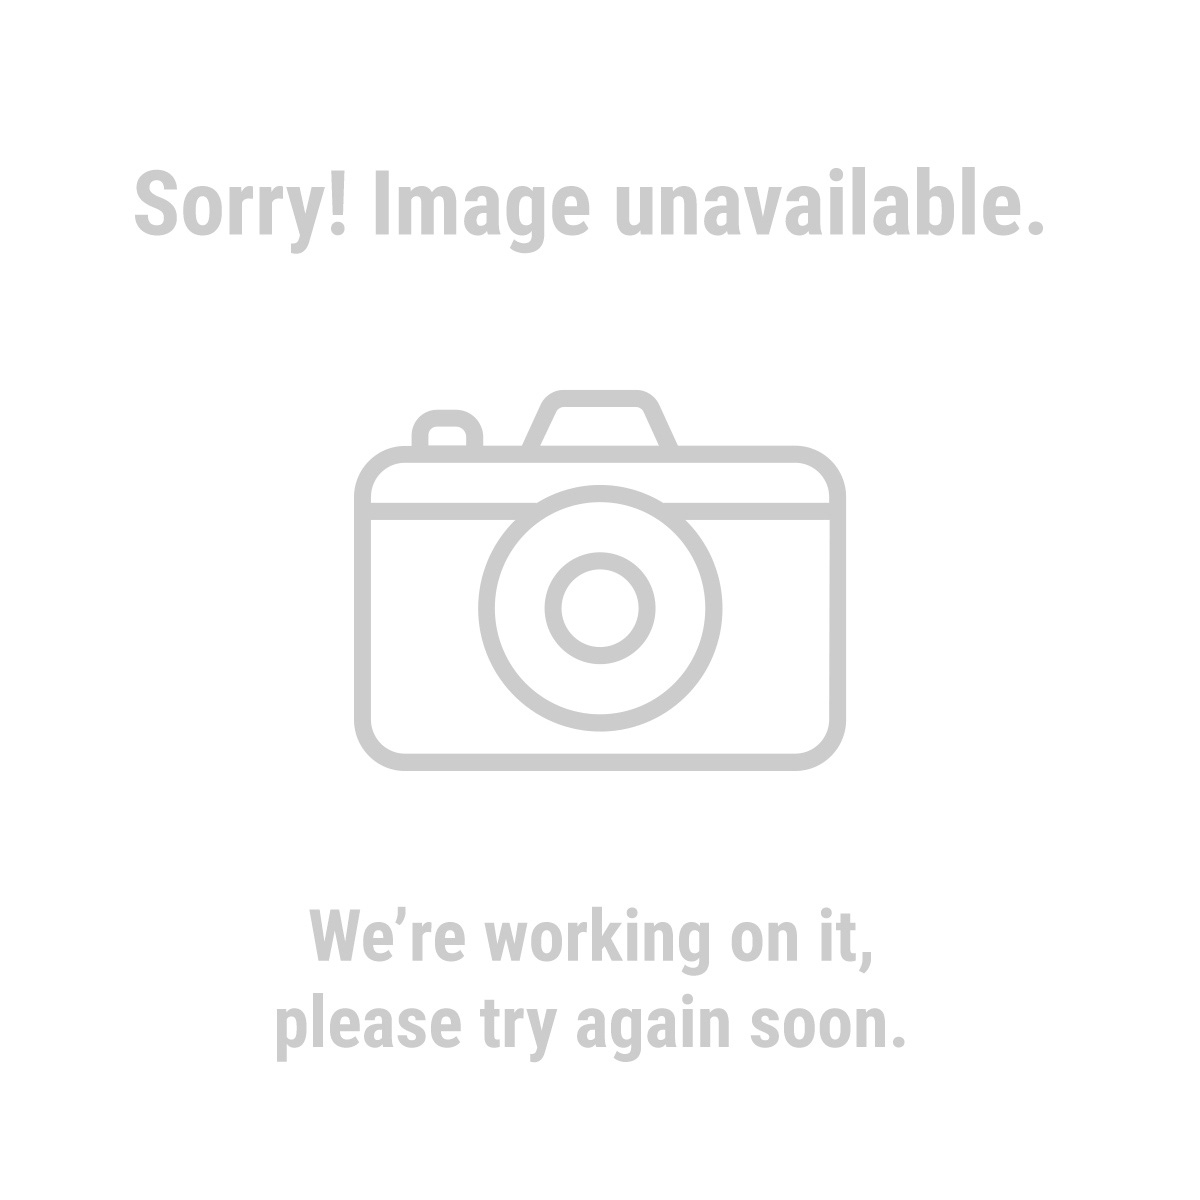 Warrior® 62474 8 in. General Purpose Bench Grinding Wheel